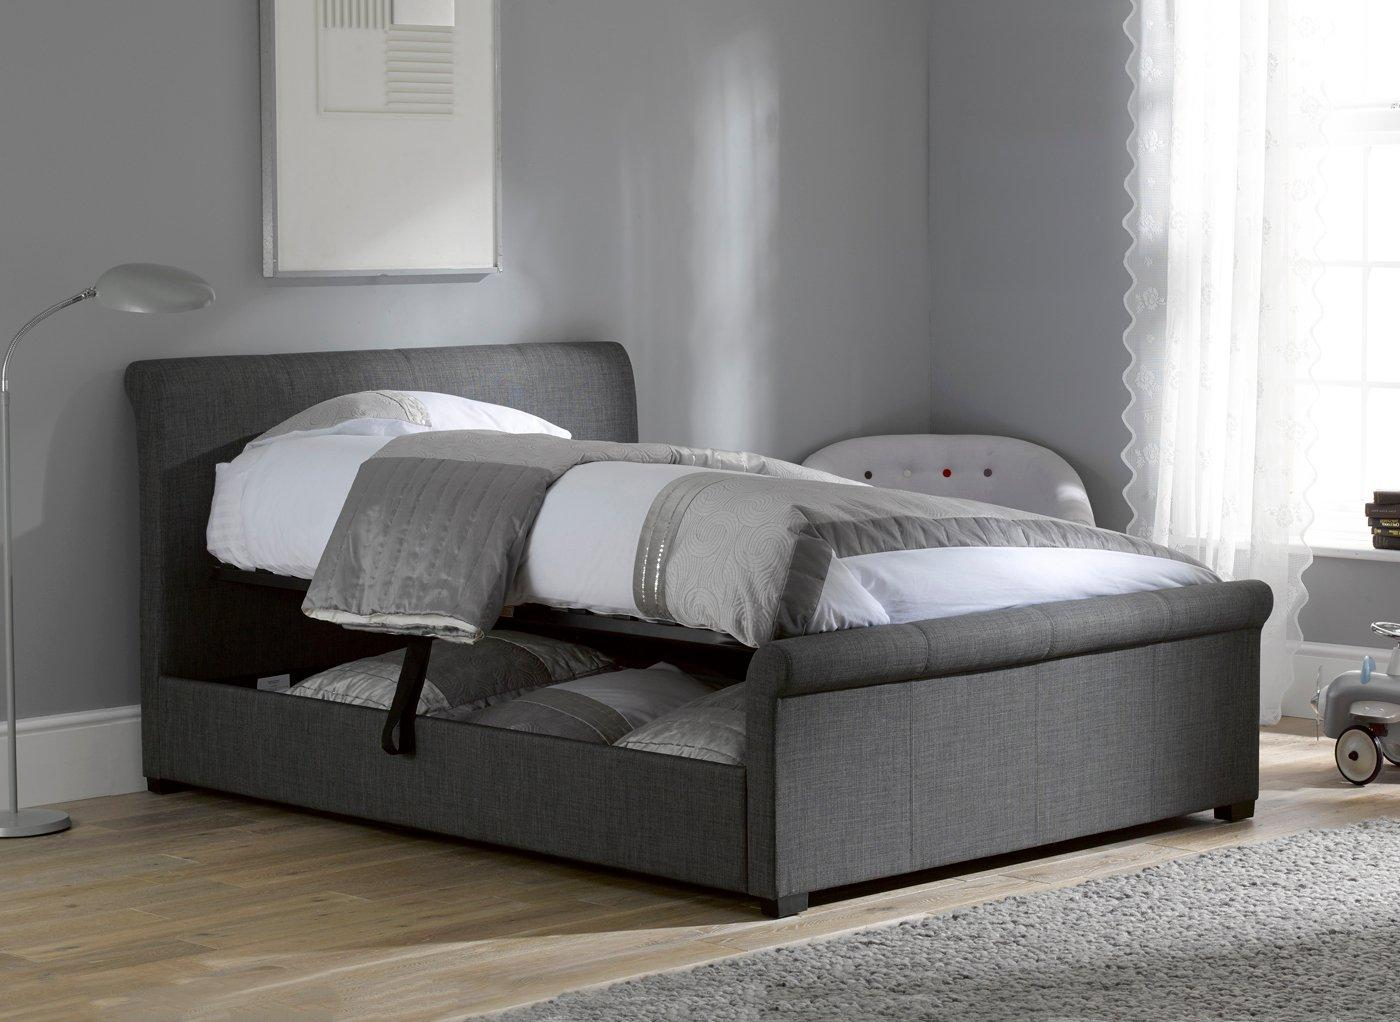 Small Double Bed Small Double Bed Frame With Free Delivery Dreams